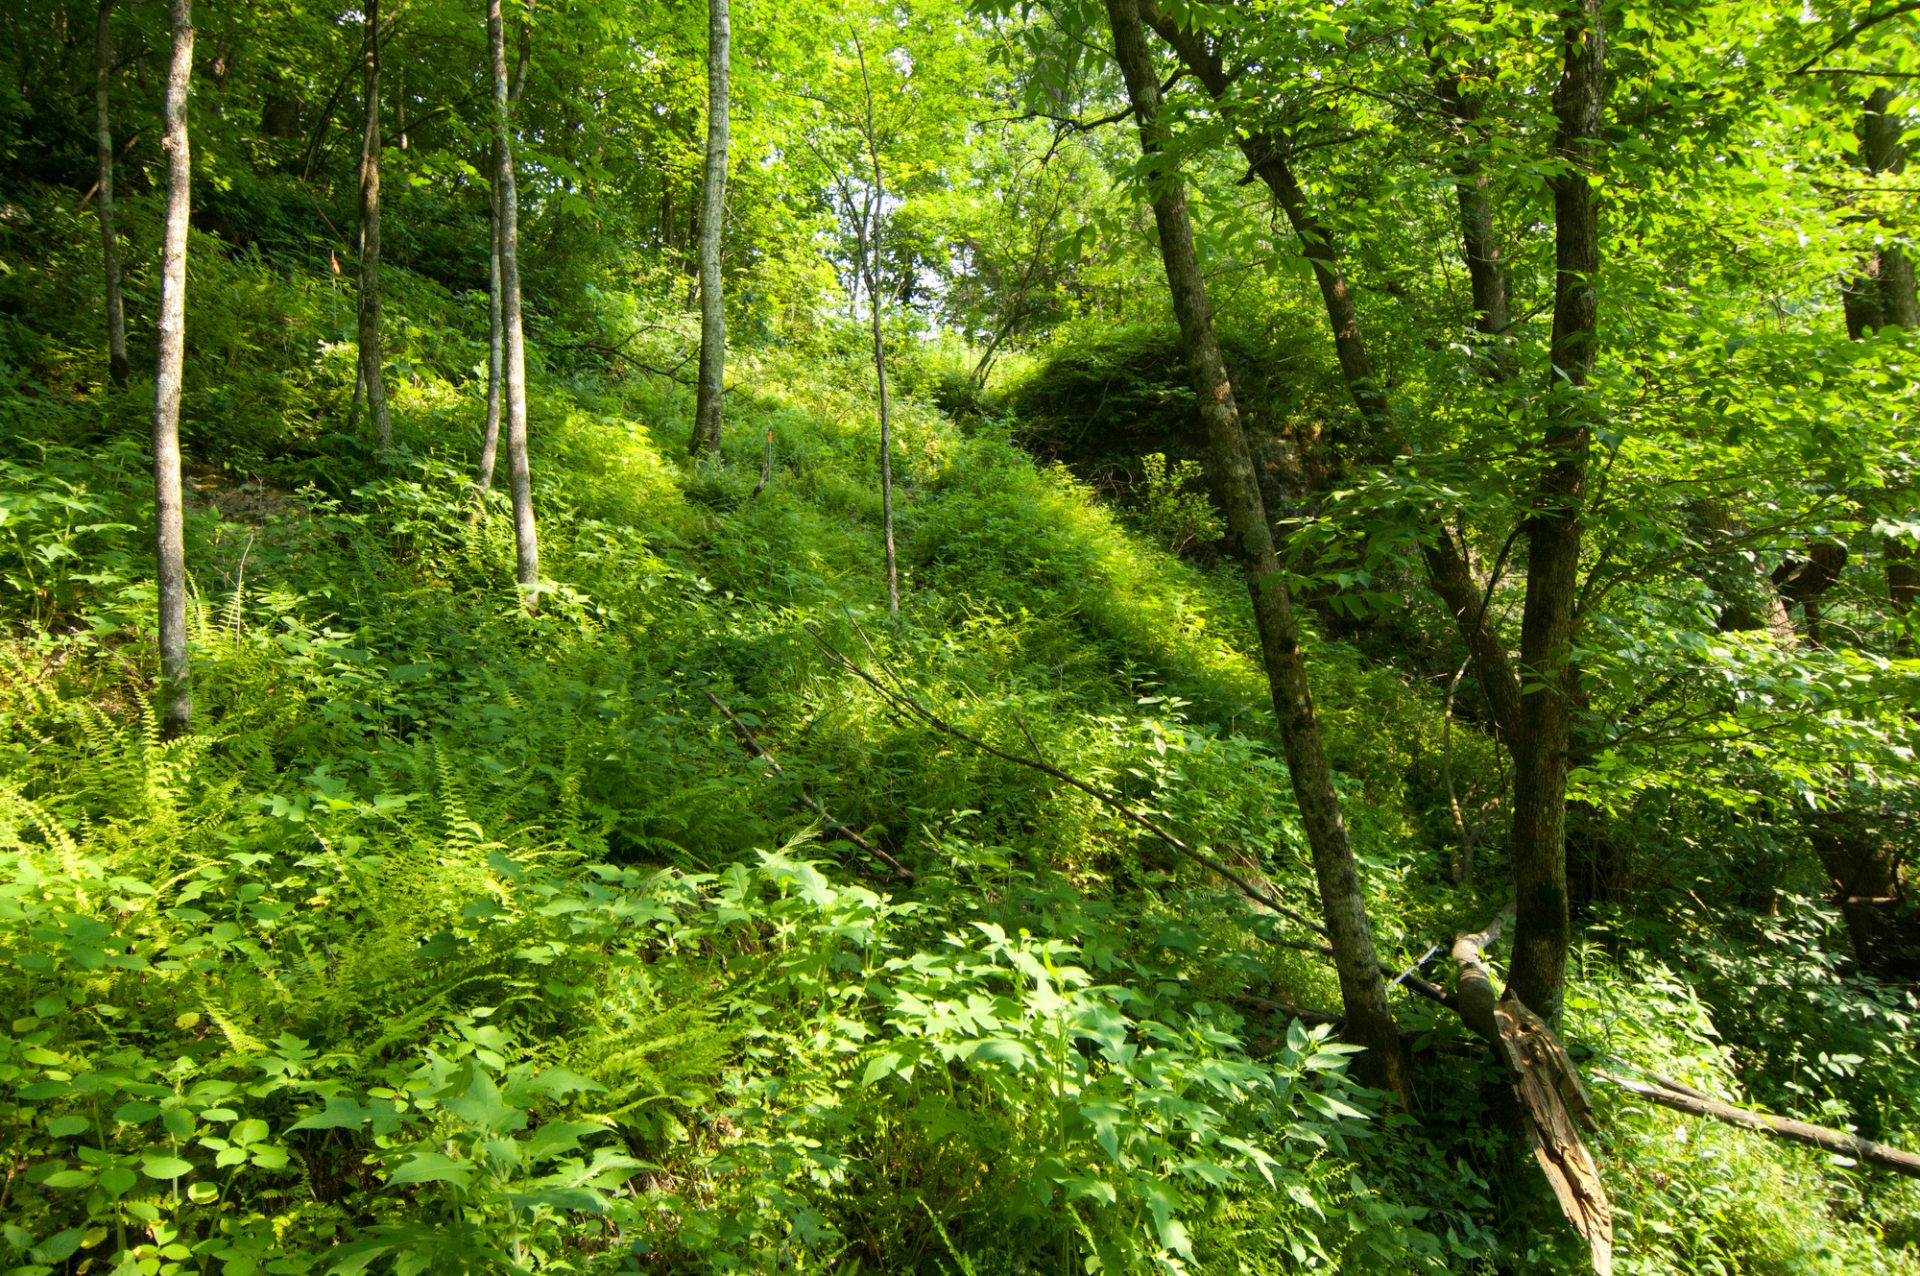 Photo: The habitat of the federally endangered Iowa Pleistocene snail on an Iowa river bluff hillside.